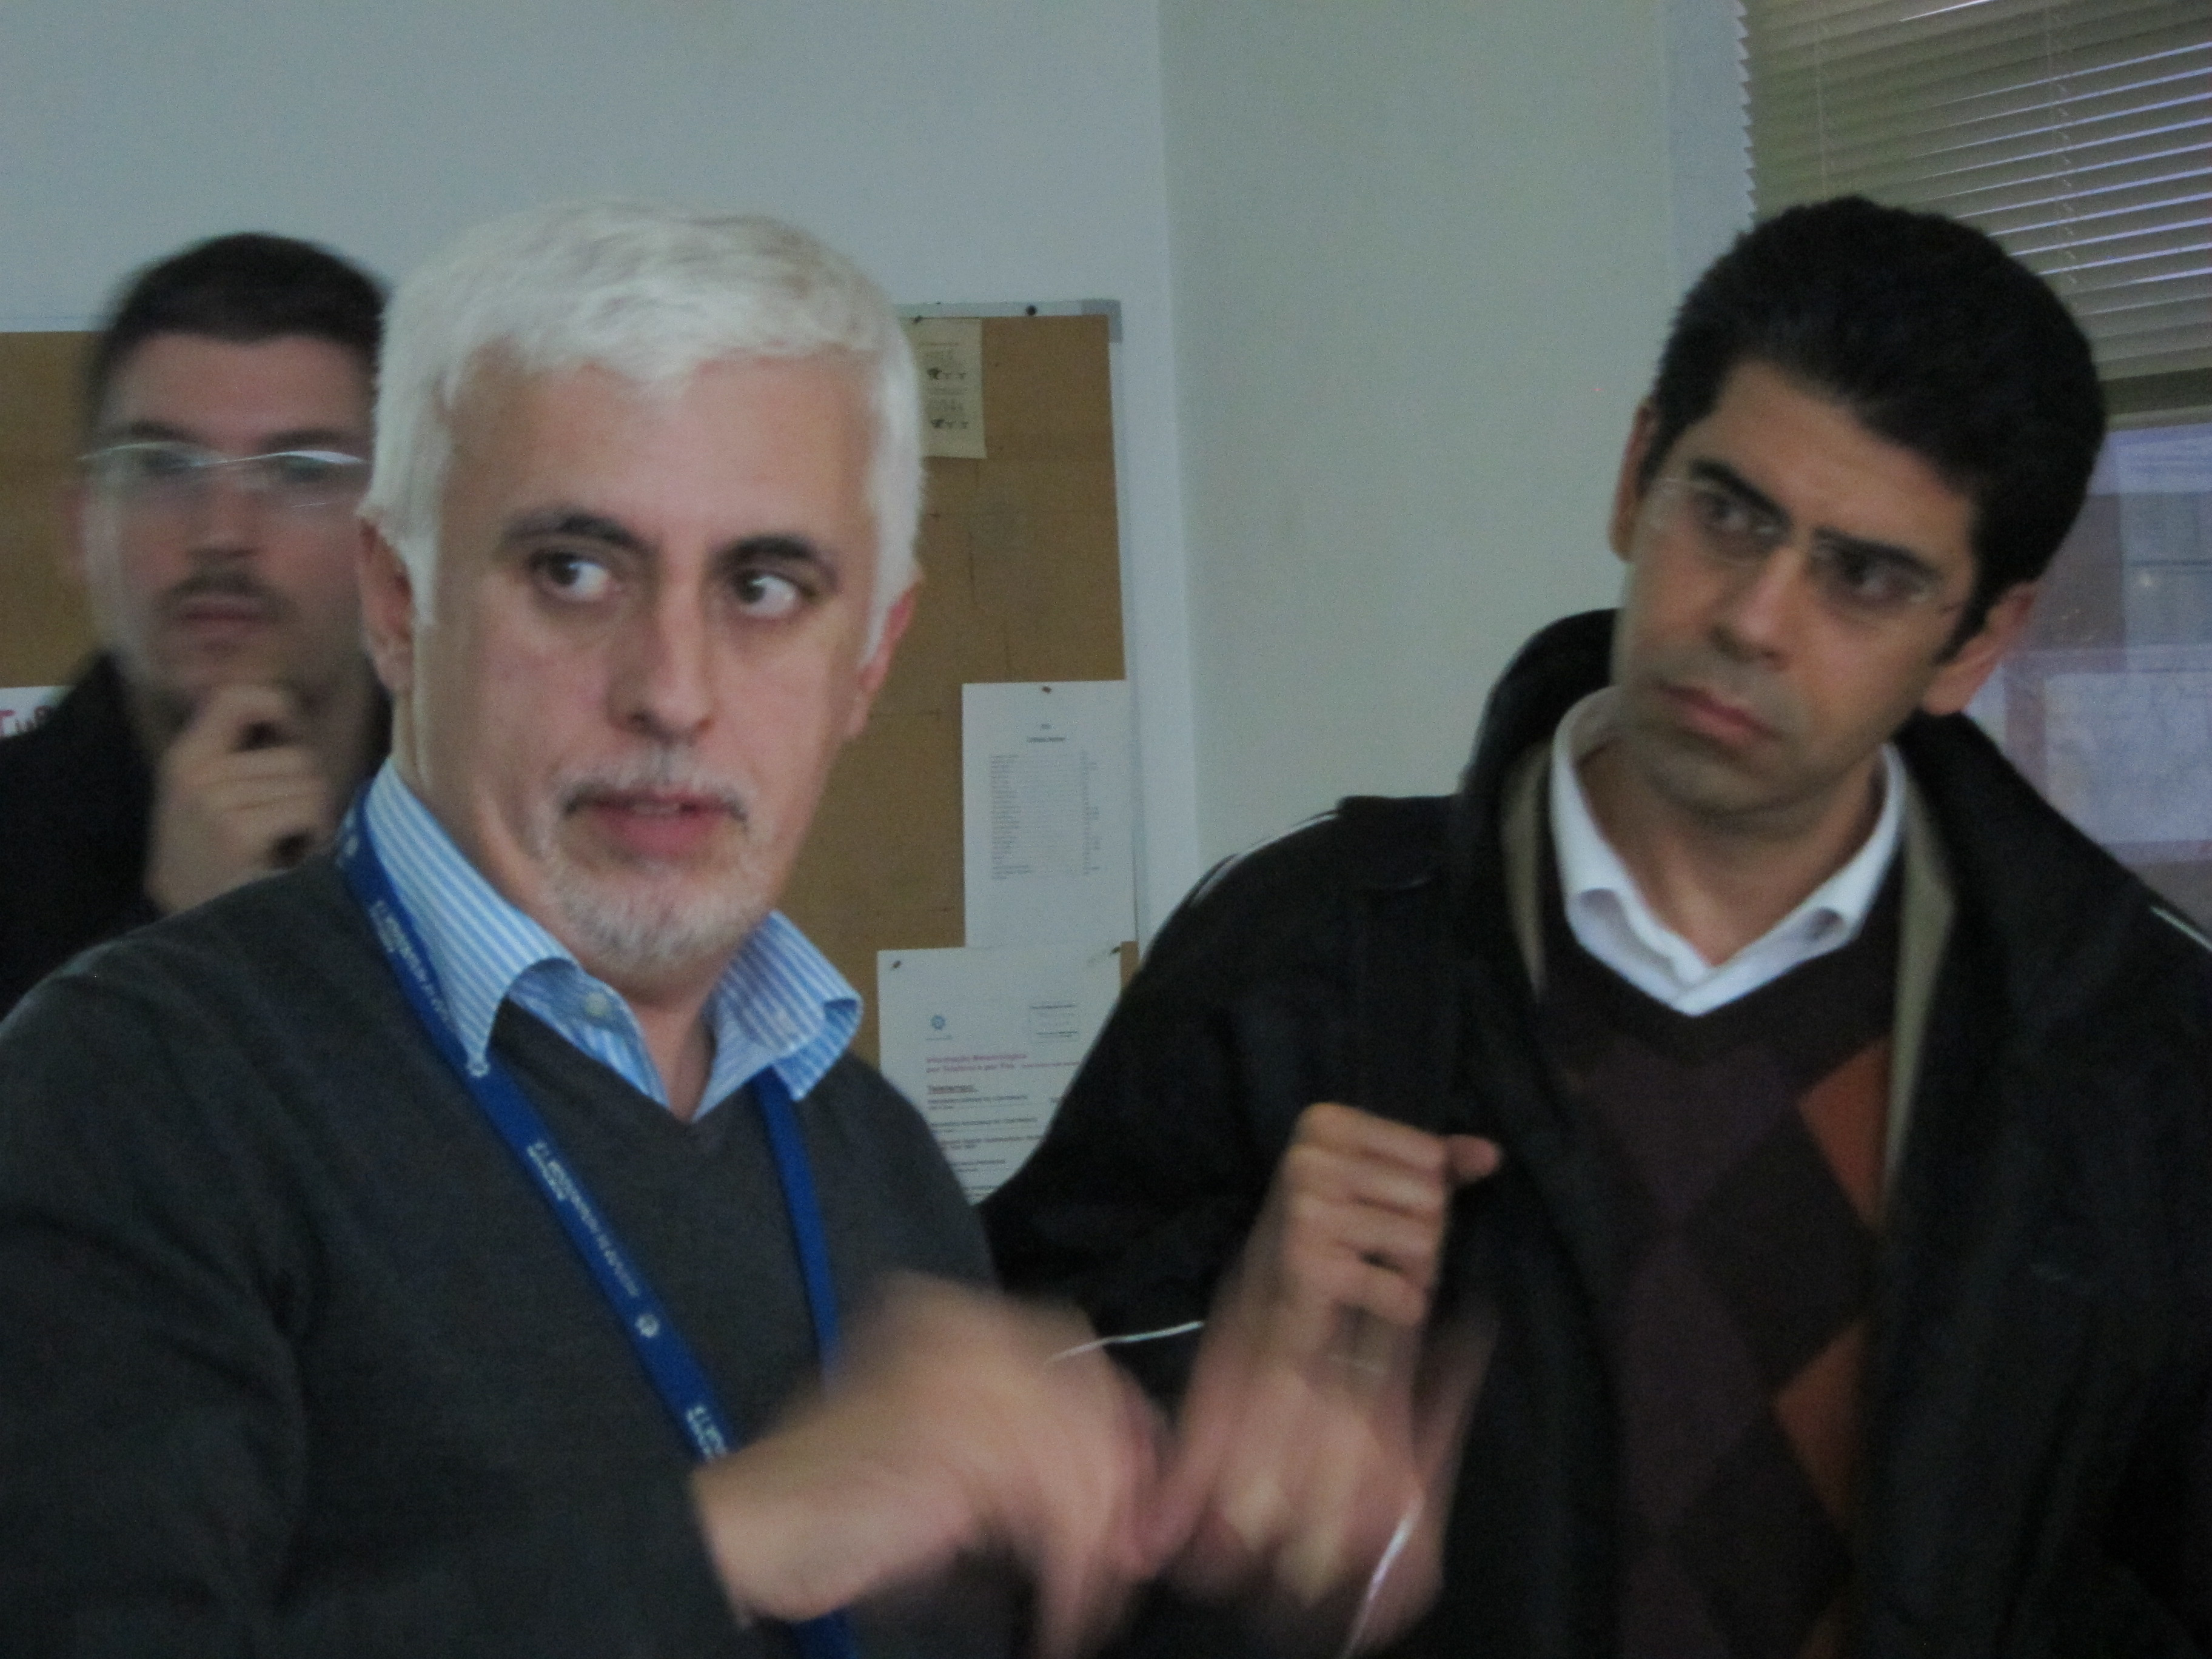 Dr. Fernando Carillho of IPMA in Lisbon giving directions to the personnel on duty